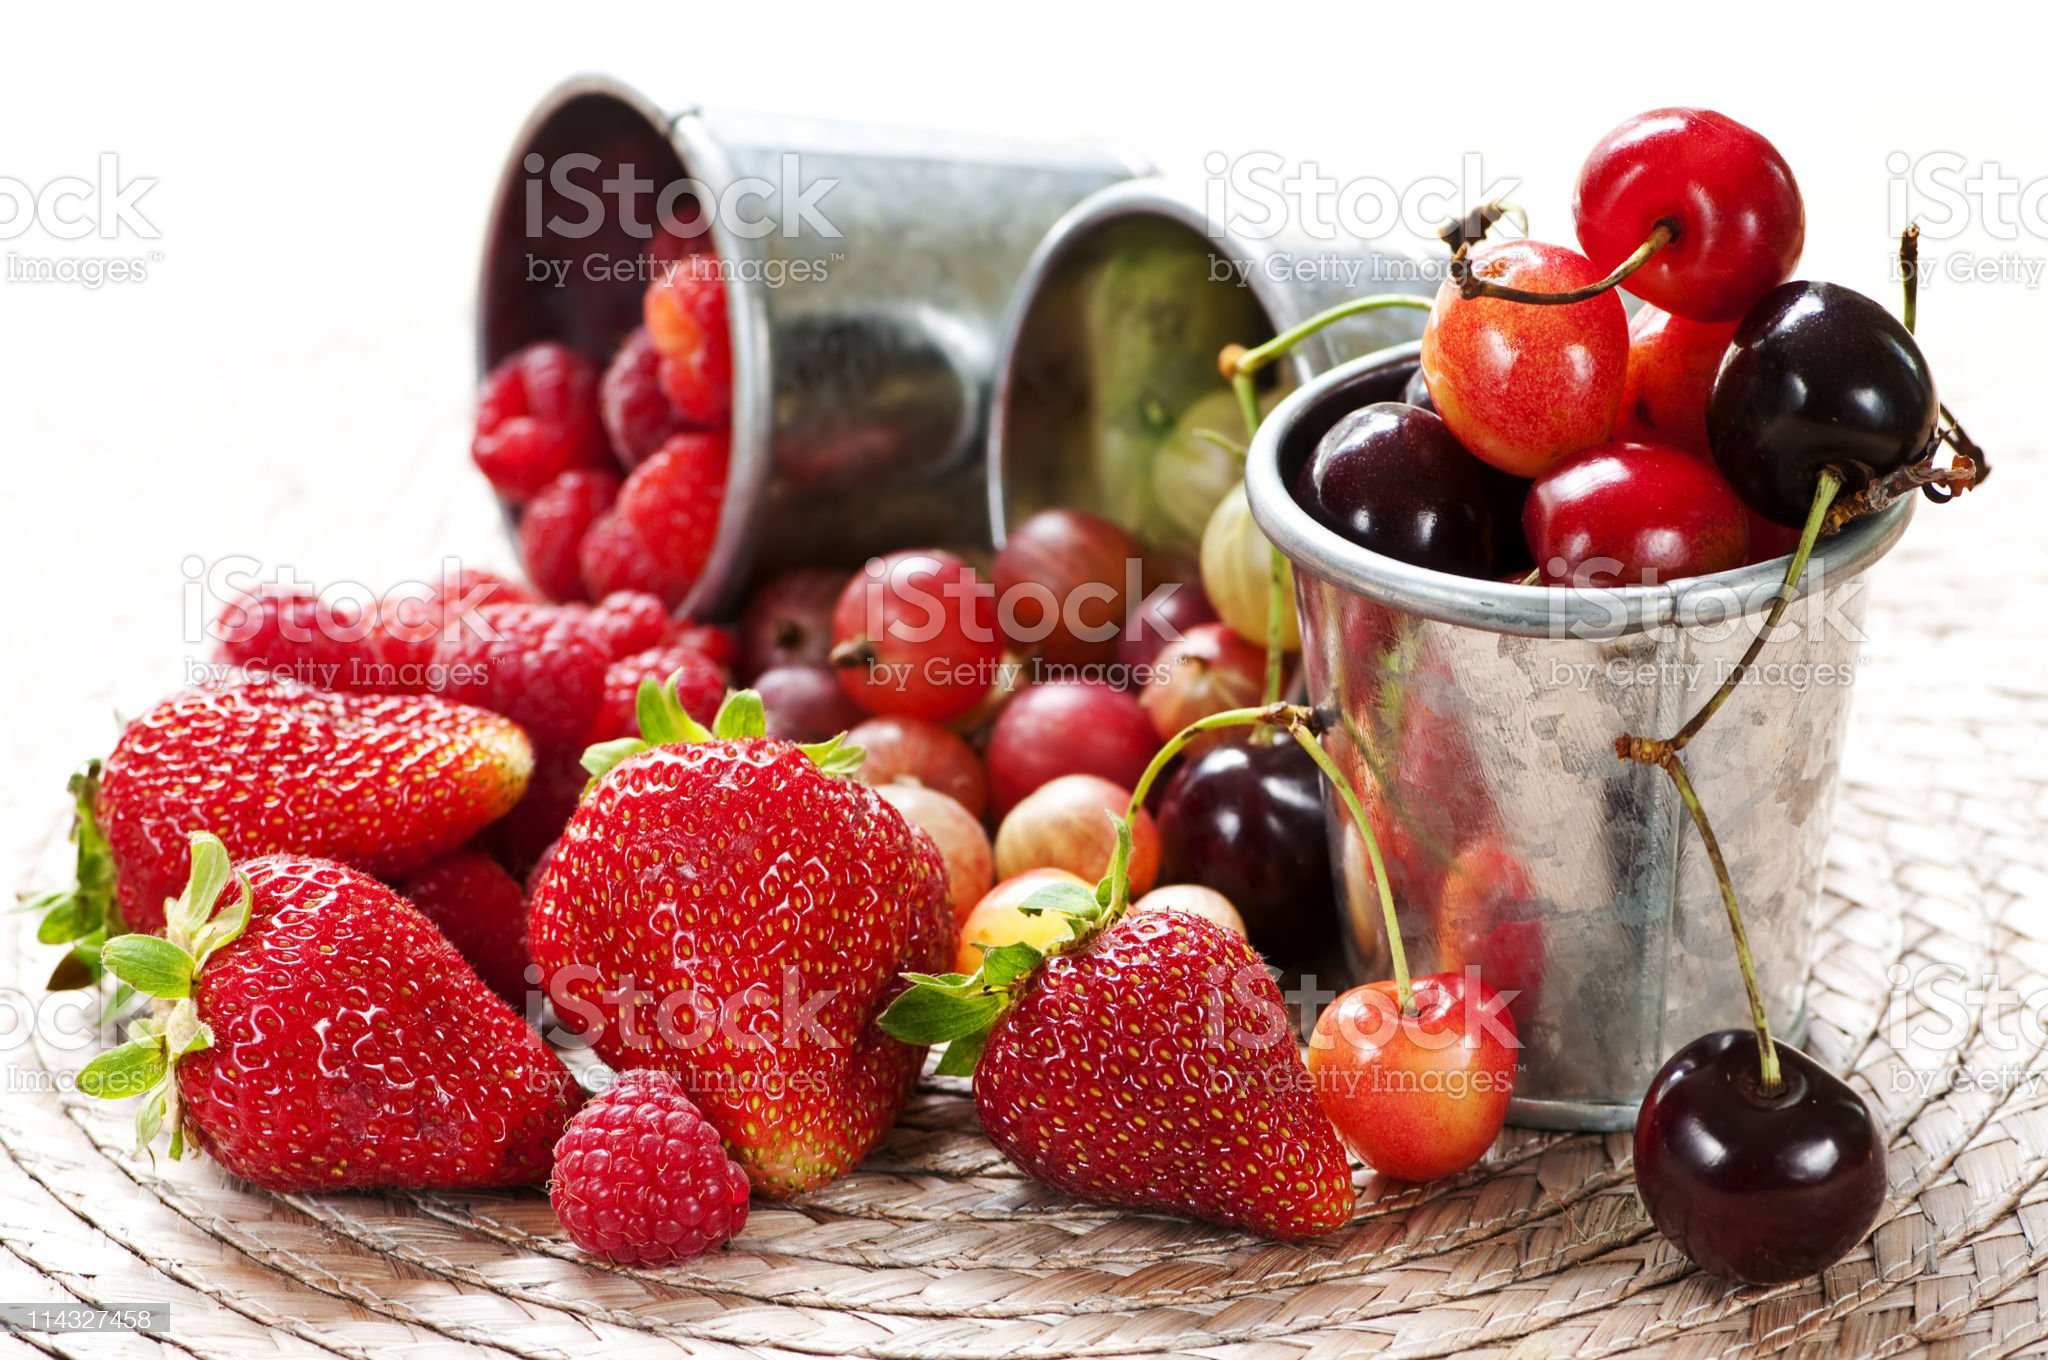 Fruits and berries royalty-free stock photo